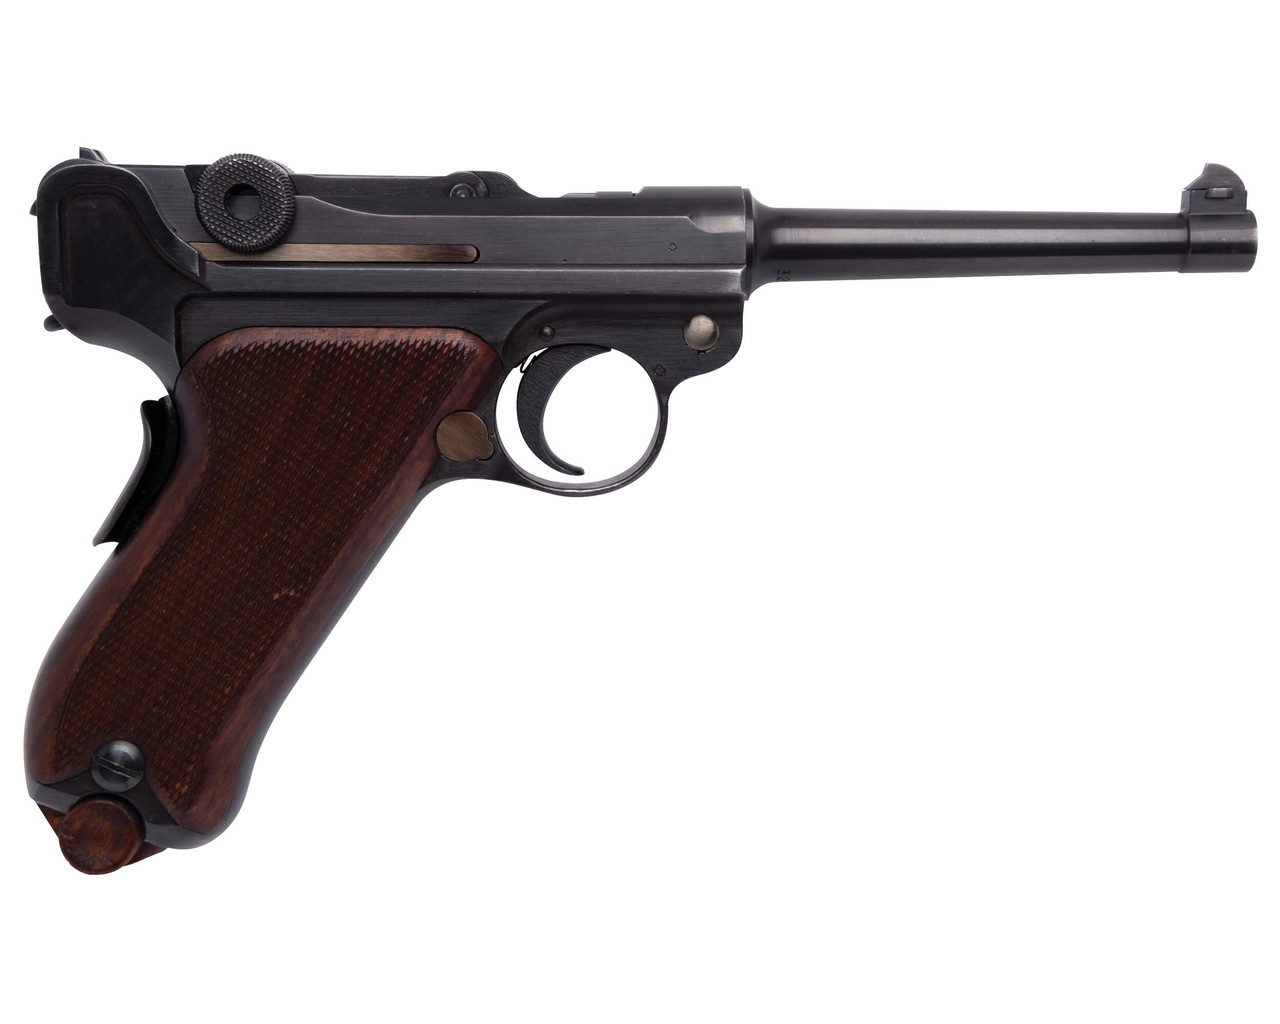 W+F Bern Swiss 06/24 Luger with Holster - sn 32xxx